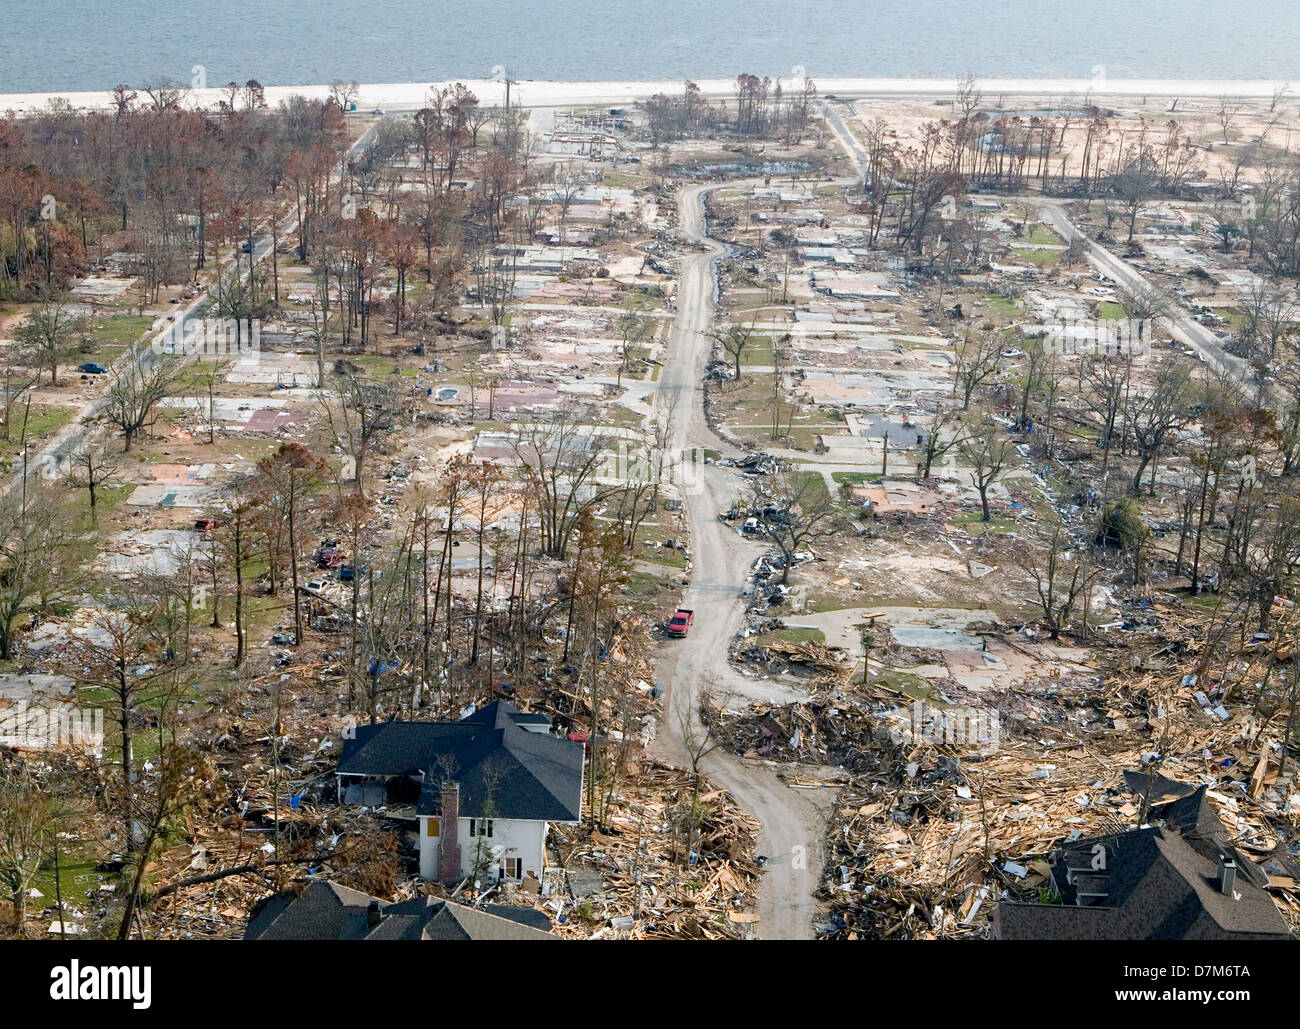 Shopping In Biloxi Ms >> Aerial view of destroyed homes in the aftermath of Hurricane Katrina Stock Photo: 56378122 - Alamy